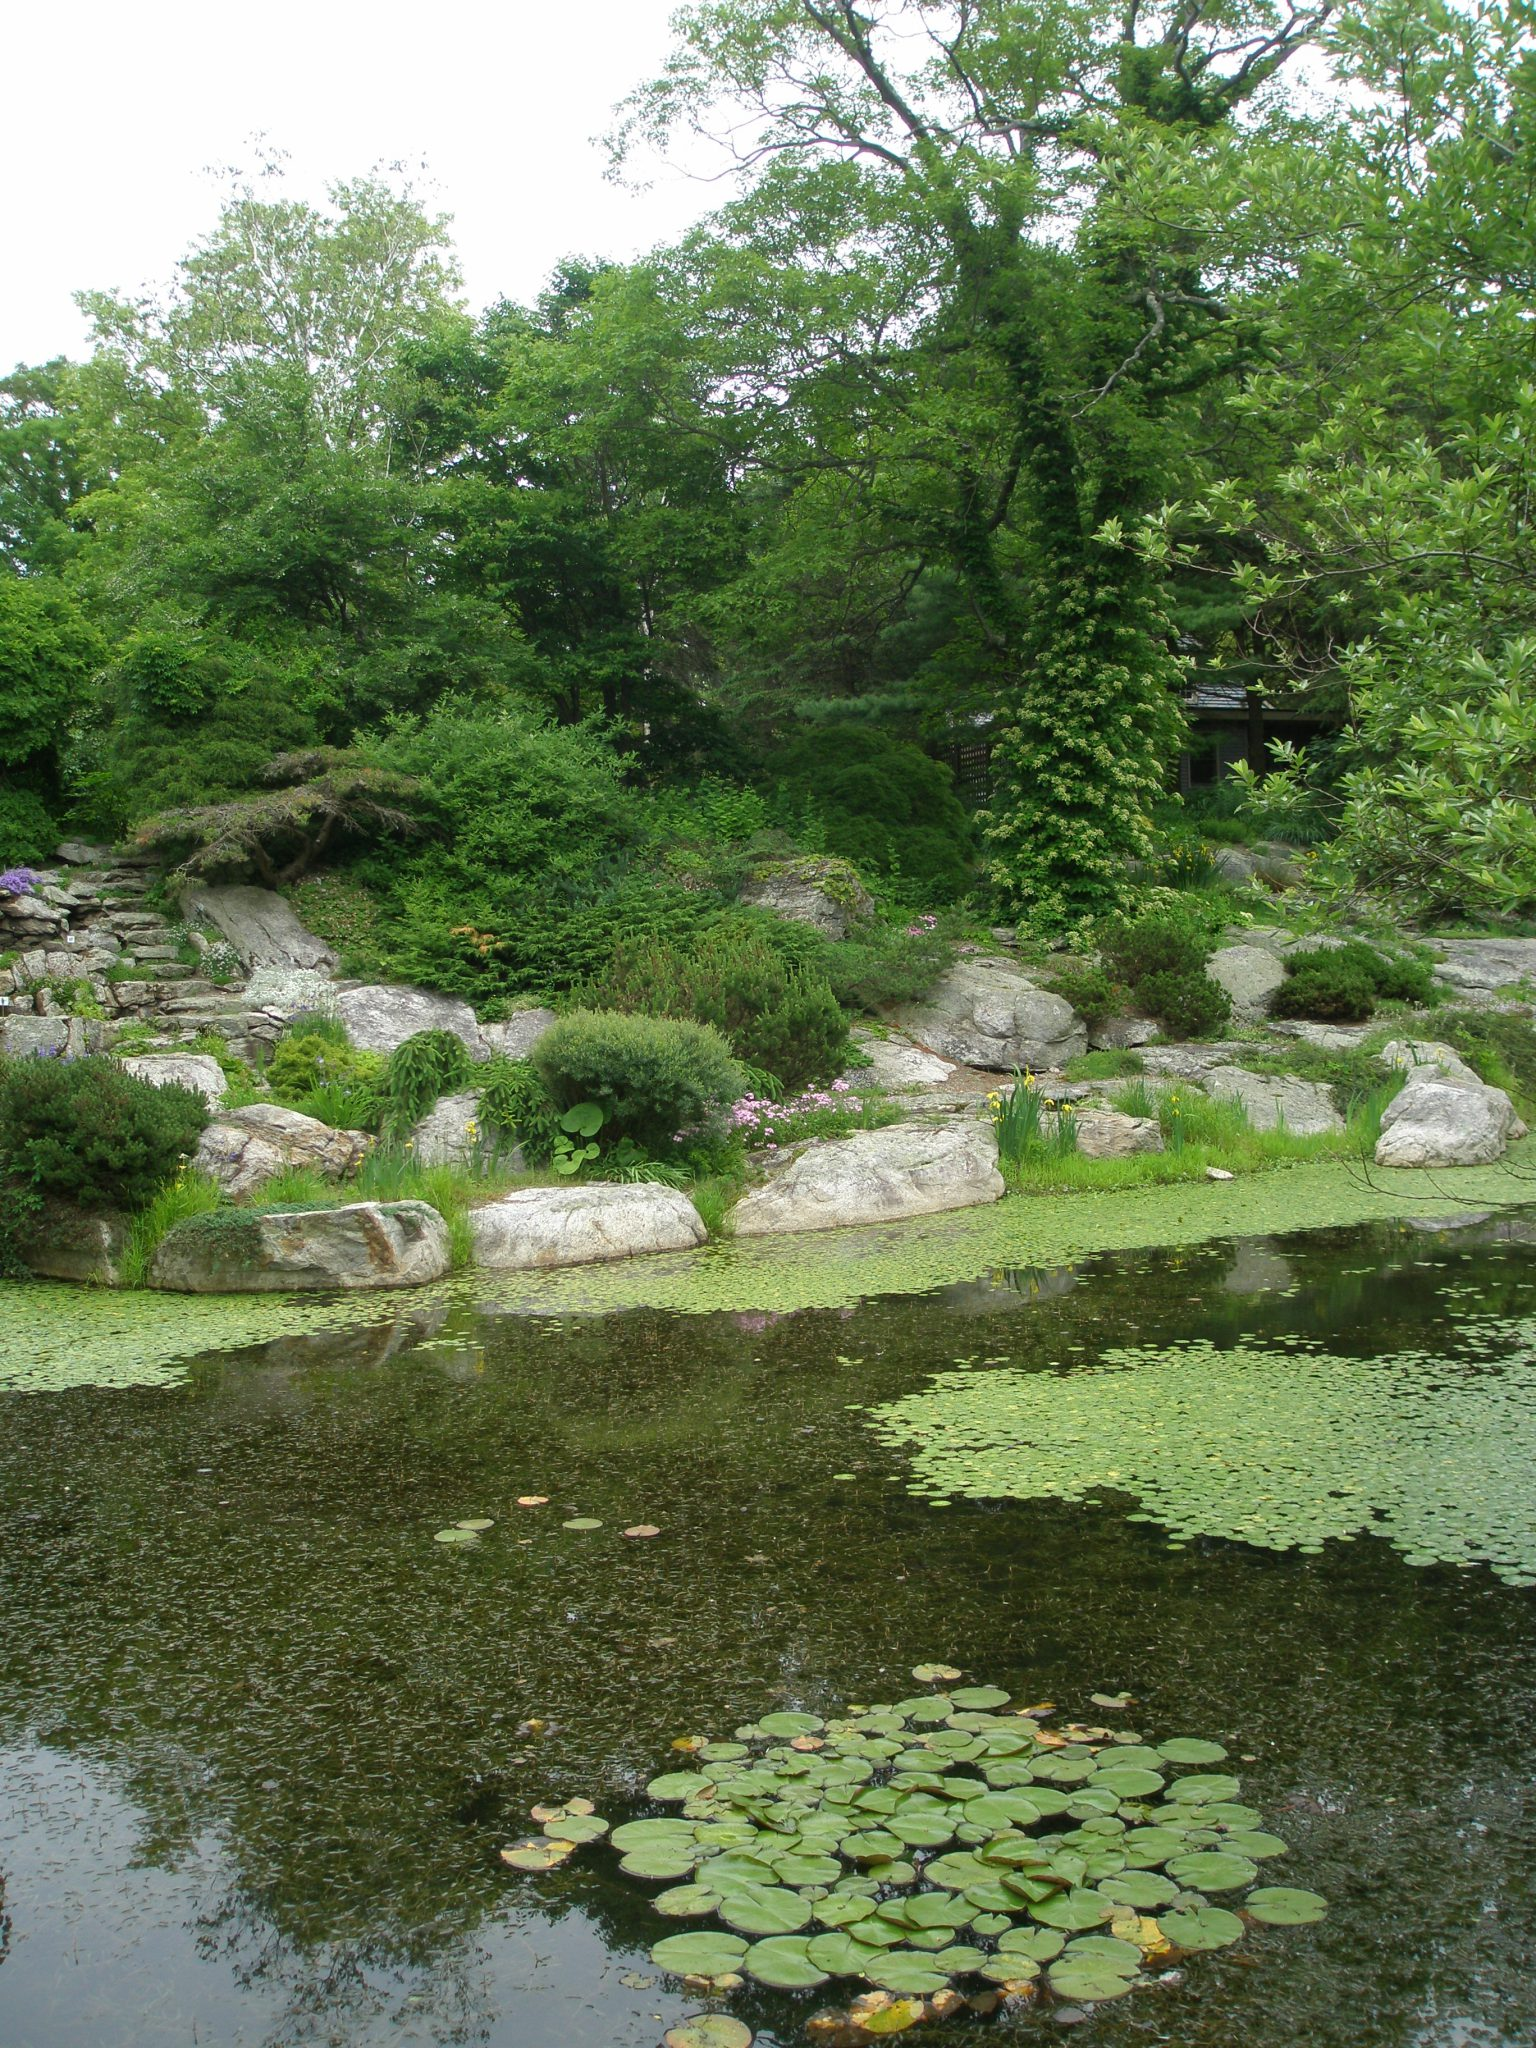 The Lake and Rock Ledge Garden